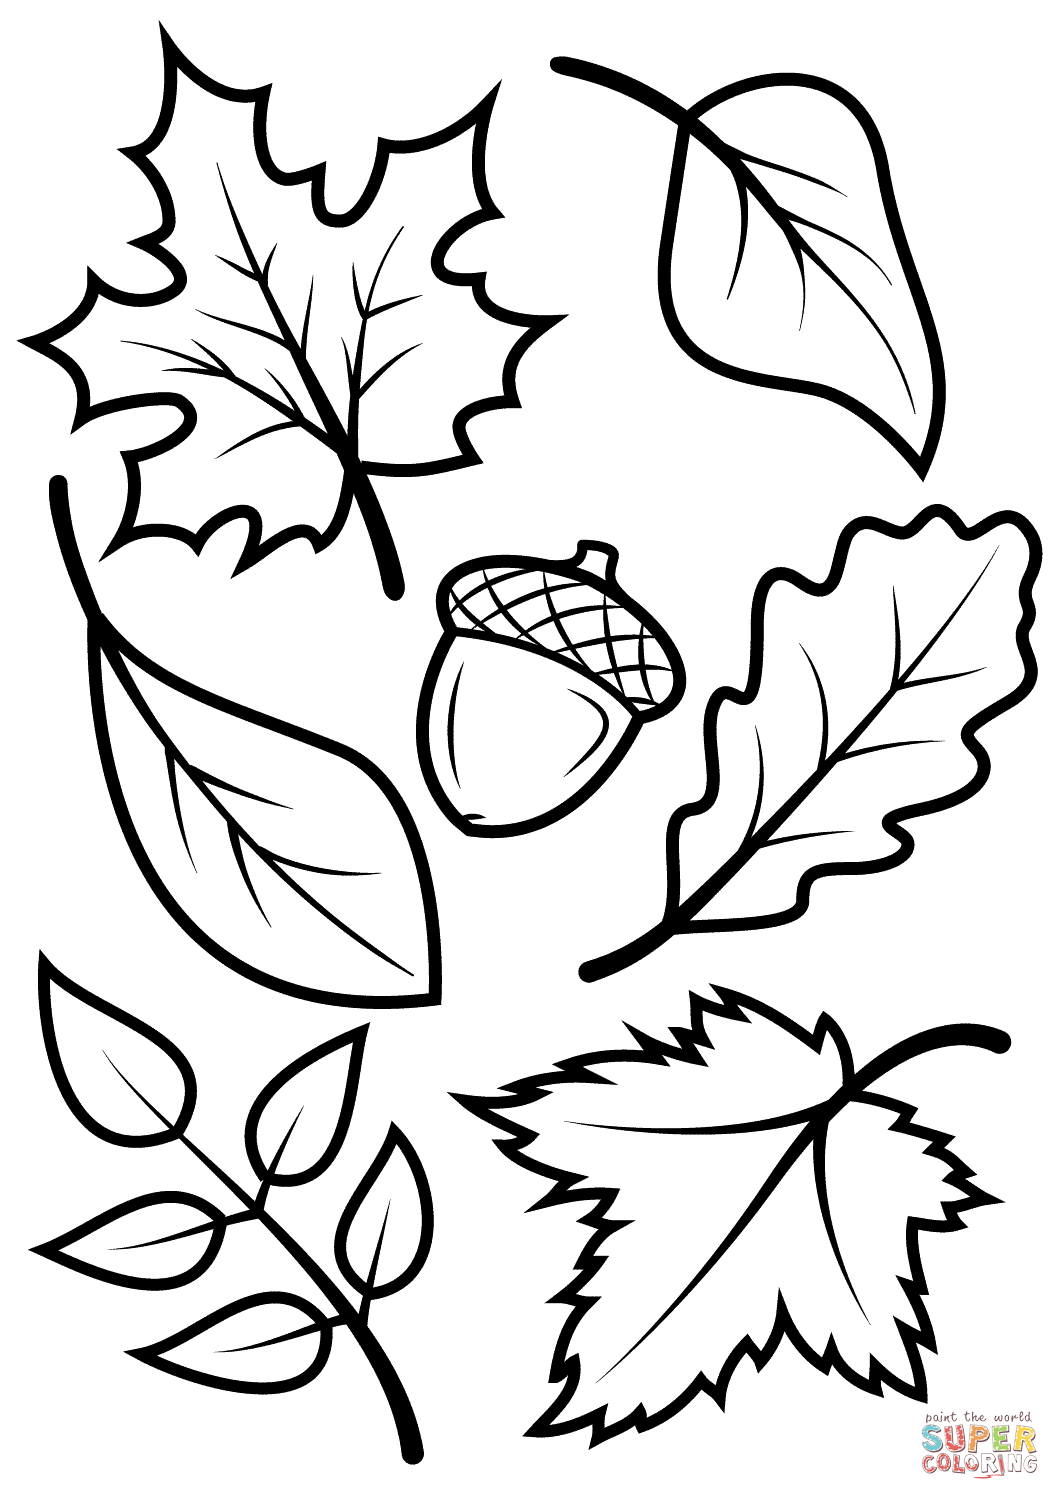 Click the fall leaves and acorn coloring pages